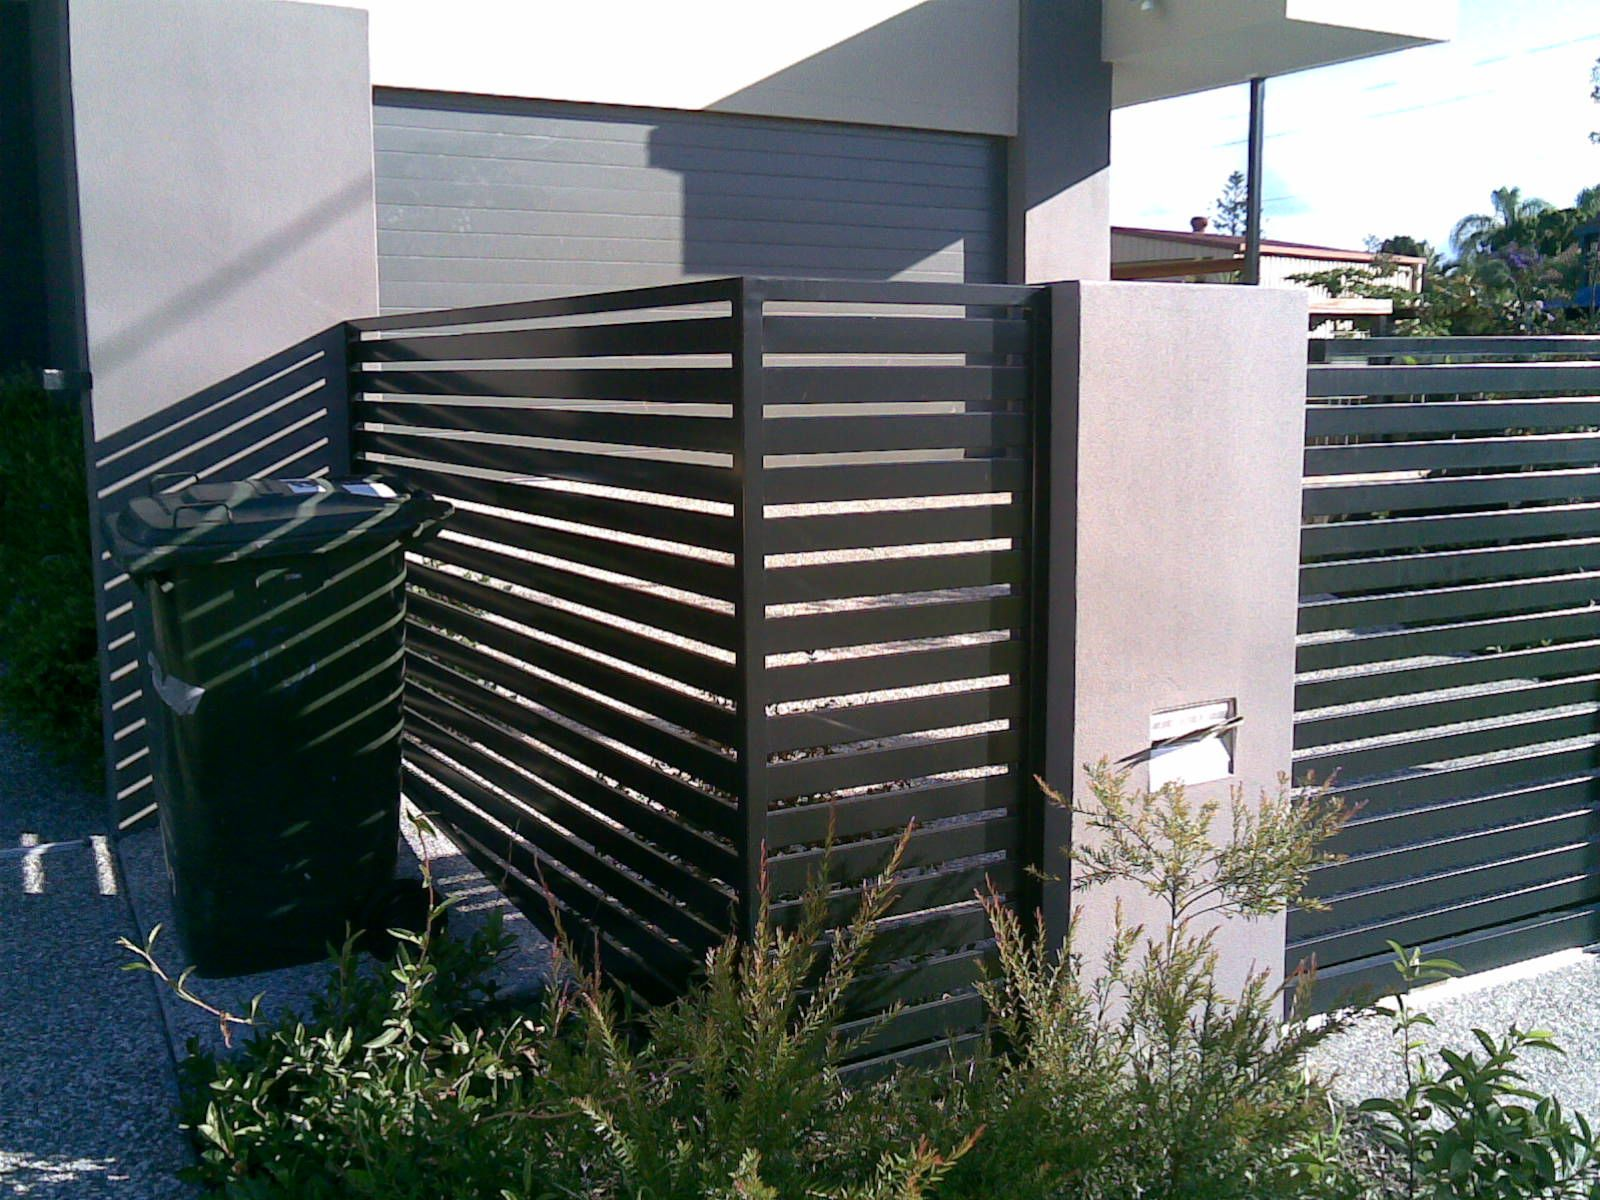 Horizontal Slatted Fence Landscaping Pinterest Fences Gates And Decking